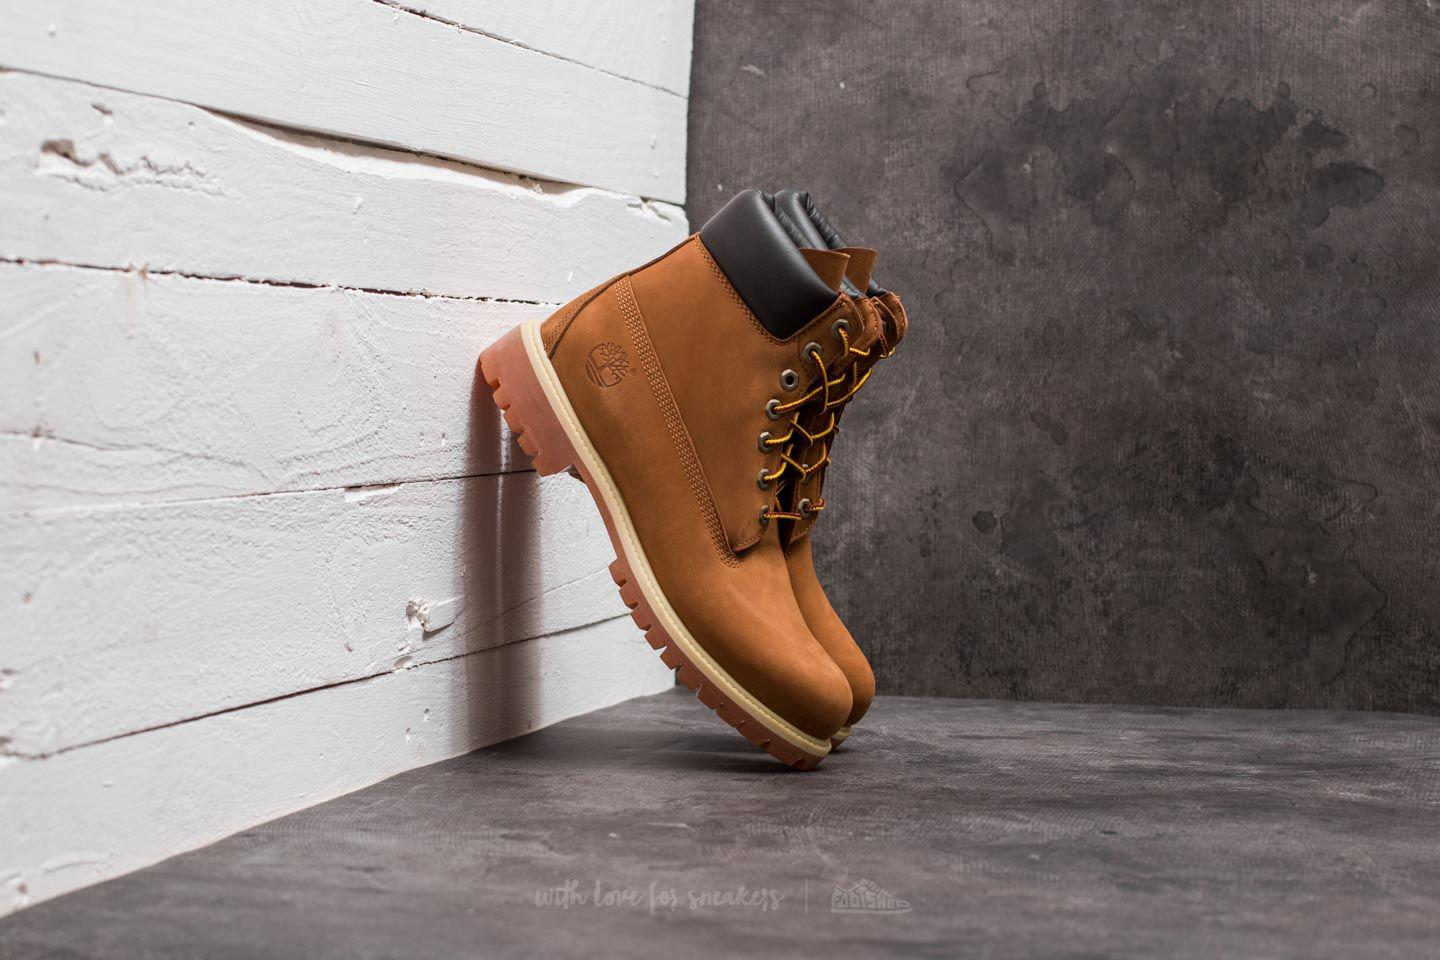 Timberland Waterproof 6-Inch Premium Boot Rust Orange tusmWb